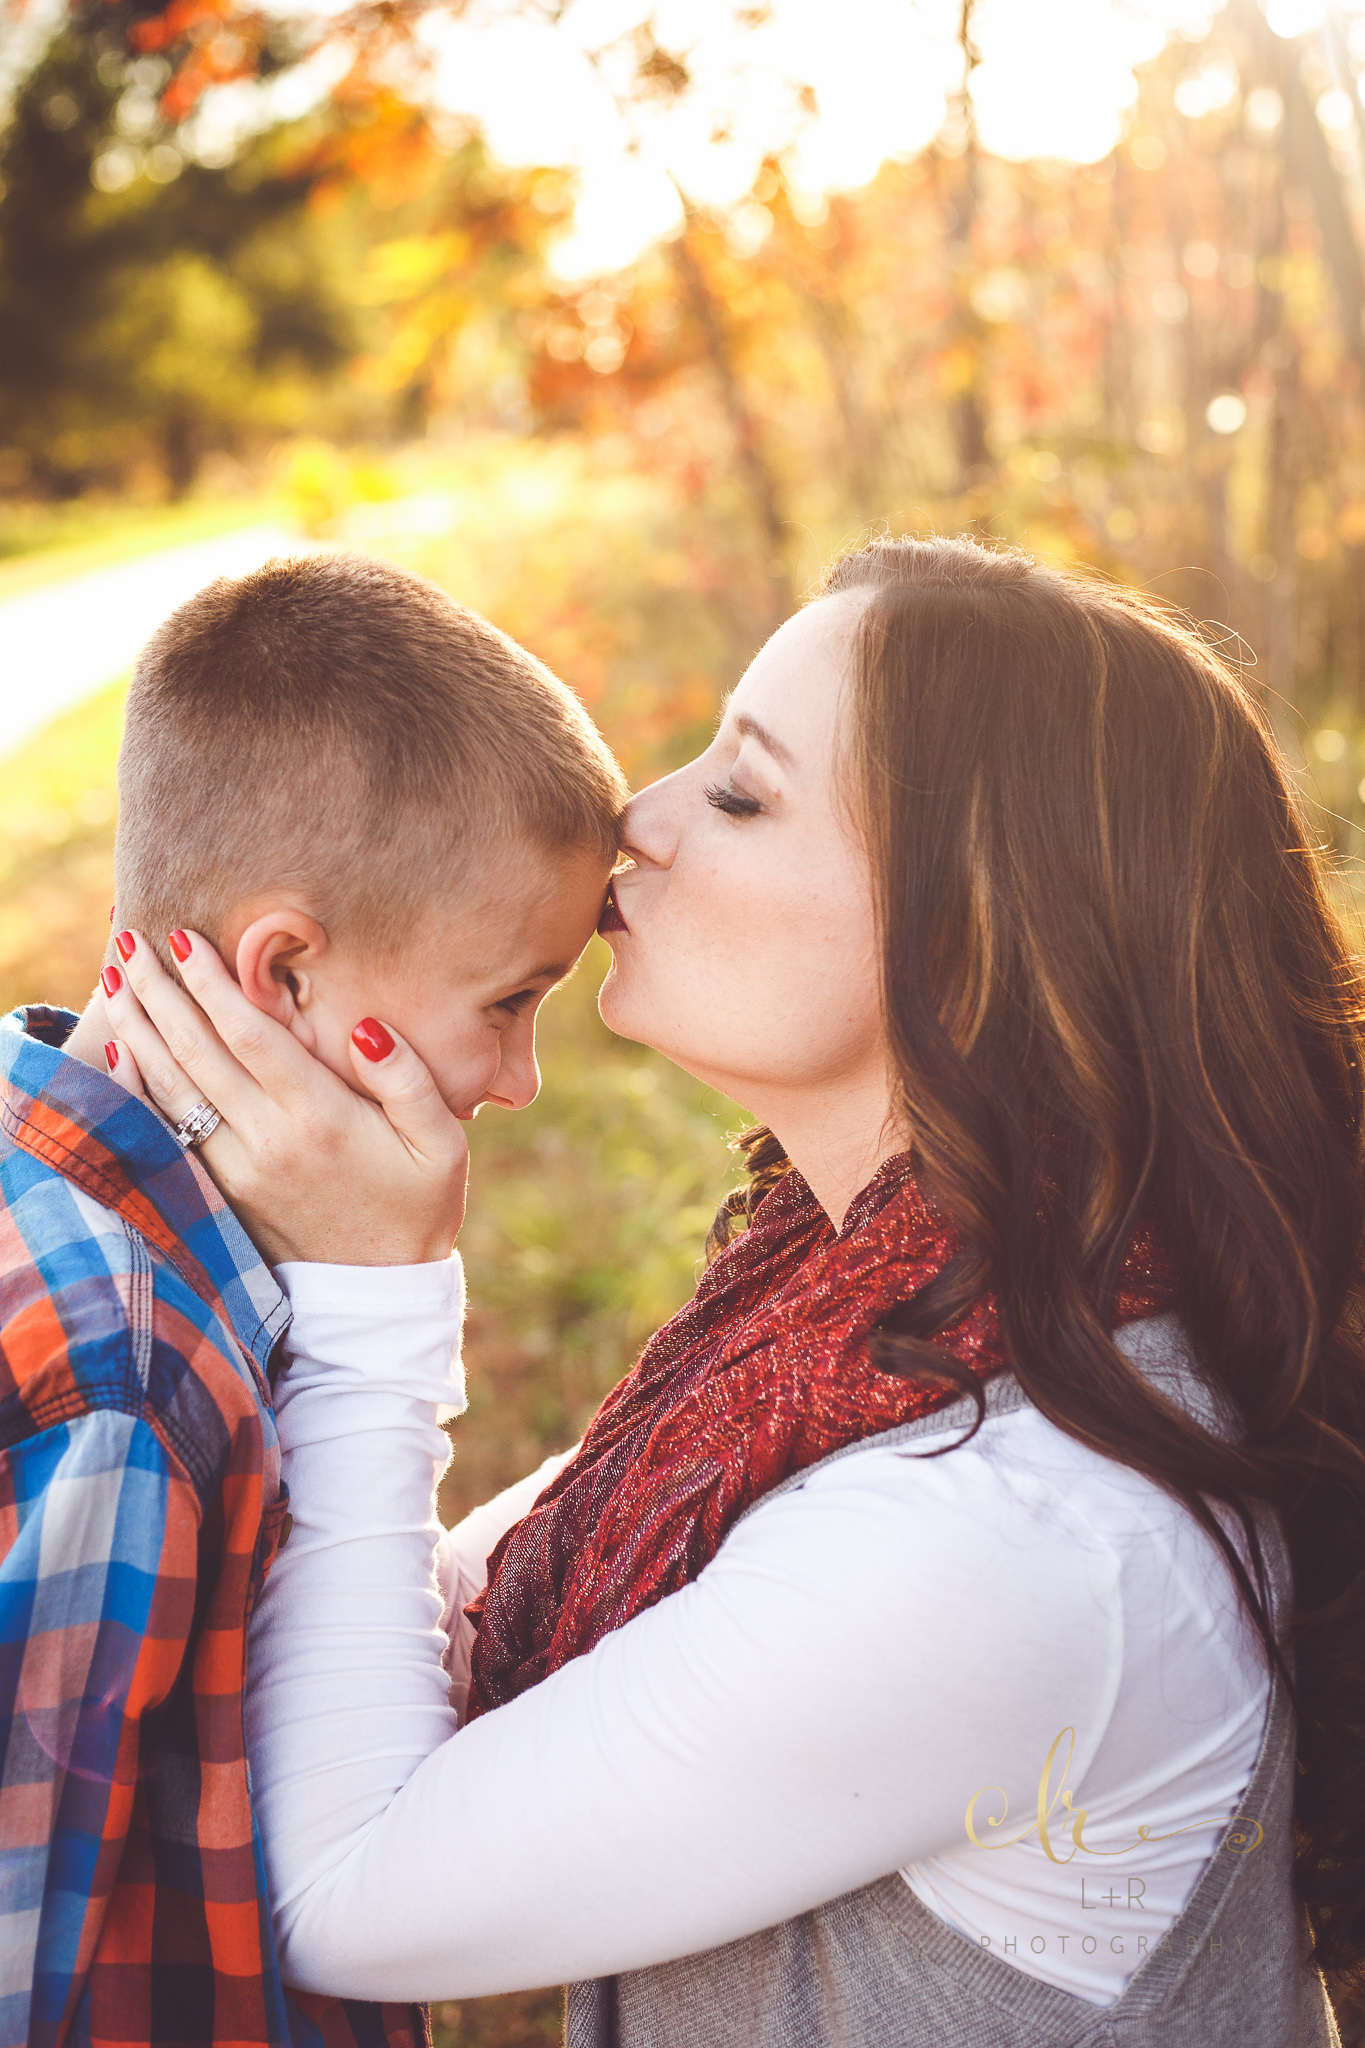 A young mother wearing a striking red scarp tenderly kisses the forehead of her son in this family photograph by L&R Photography of Tulsa, OK